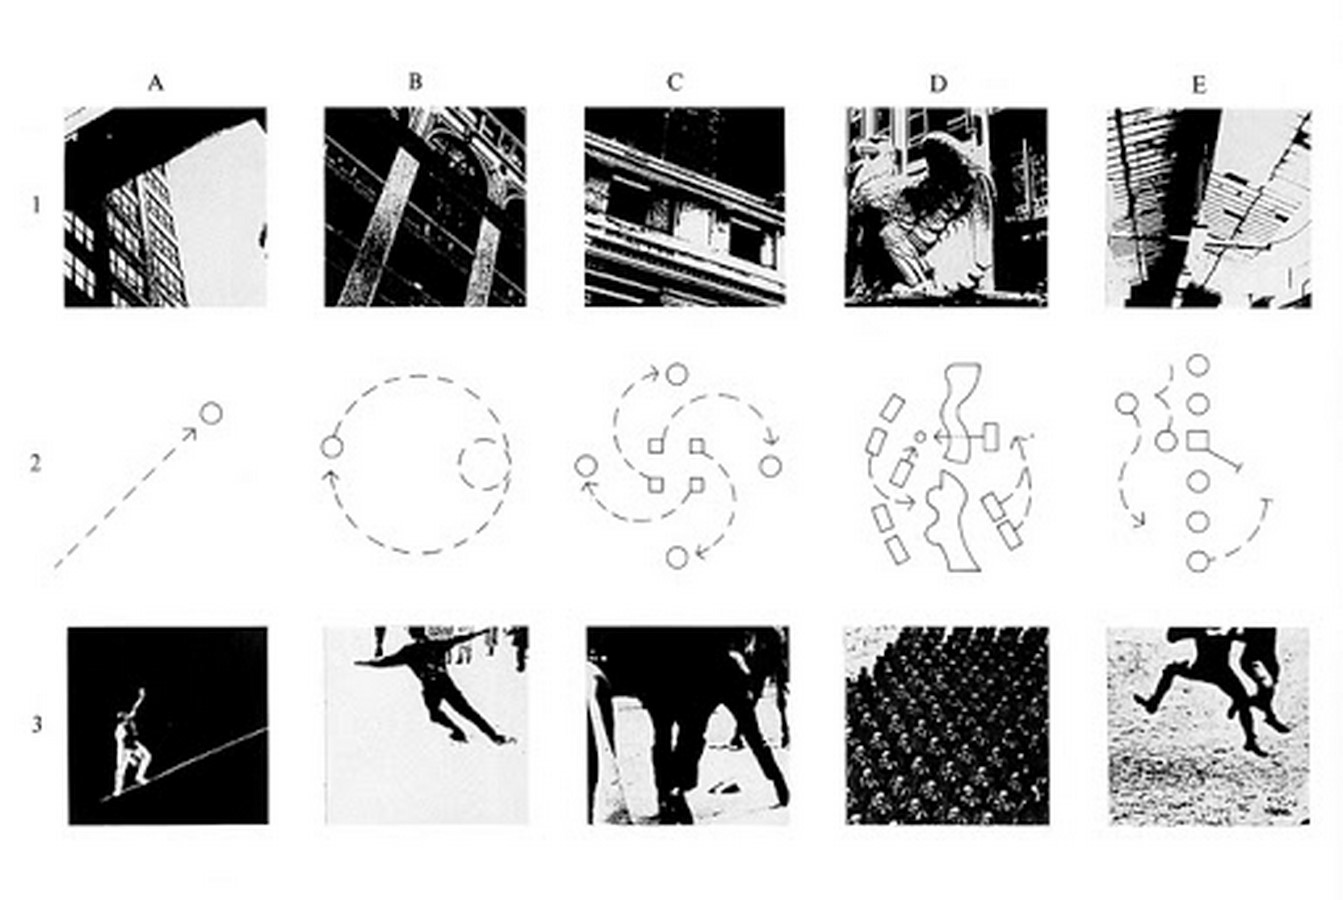 The Similarity between architecture and dance - Sheet 12